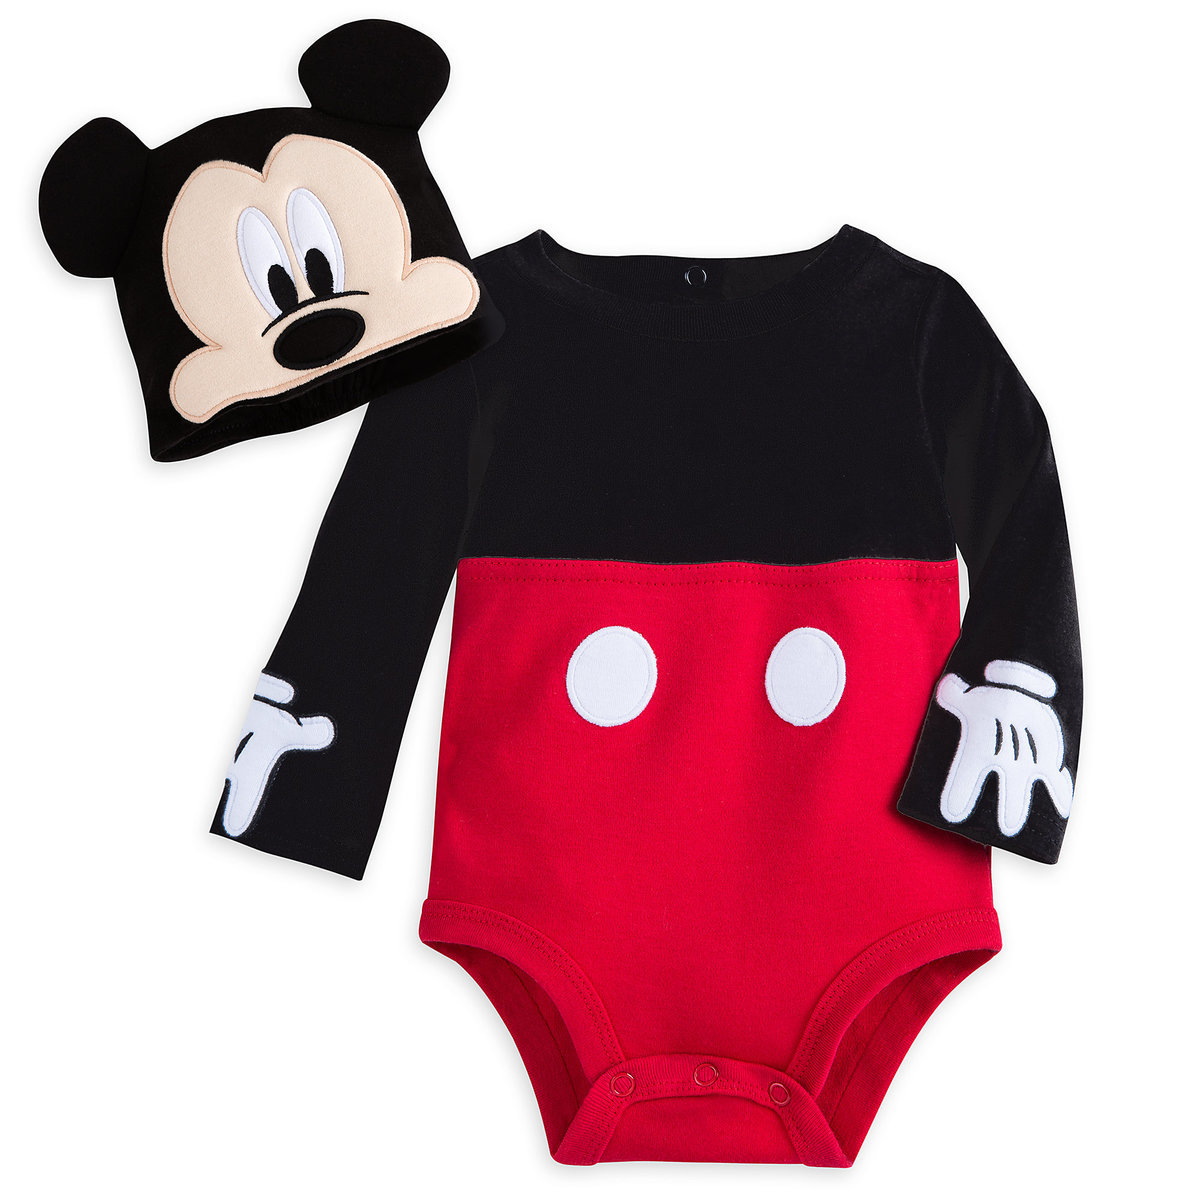 c3731dfc6ca1 Mickey Mouse Costume Bodysuit Set for Baby - Personalizable